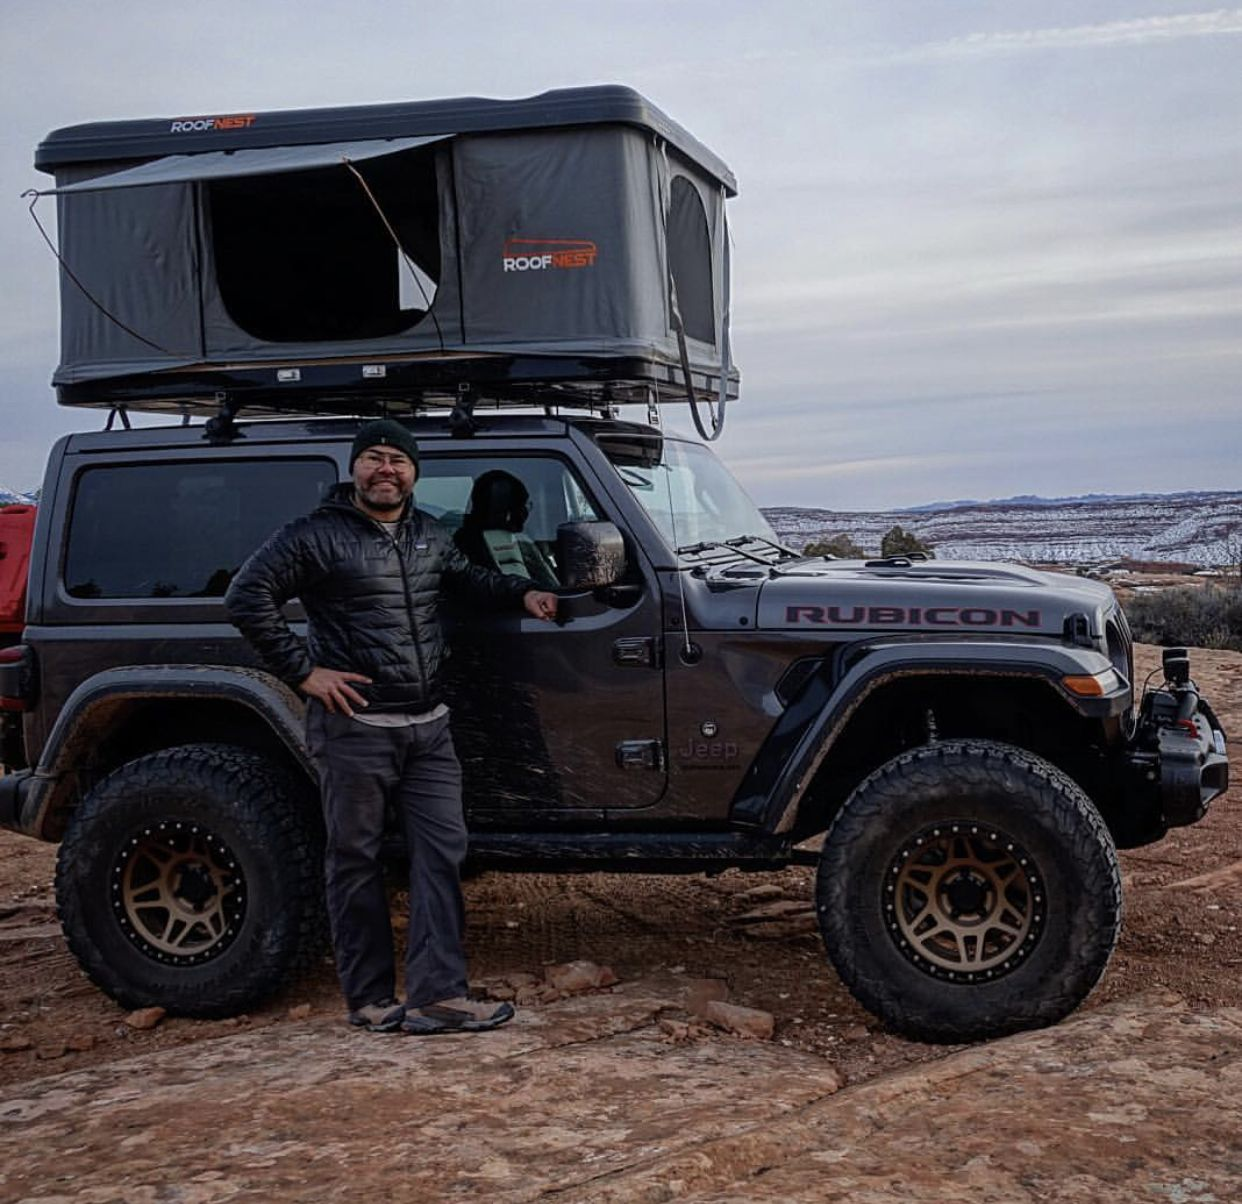 Overland Jeep Jeep Tent Dream Cars Jeep Jeep Camping